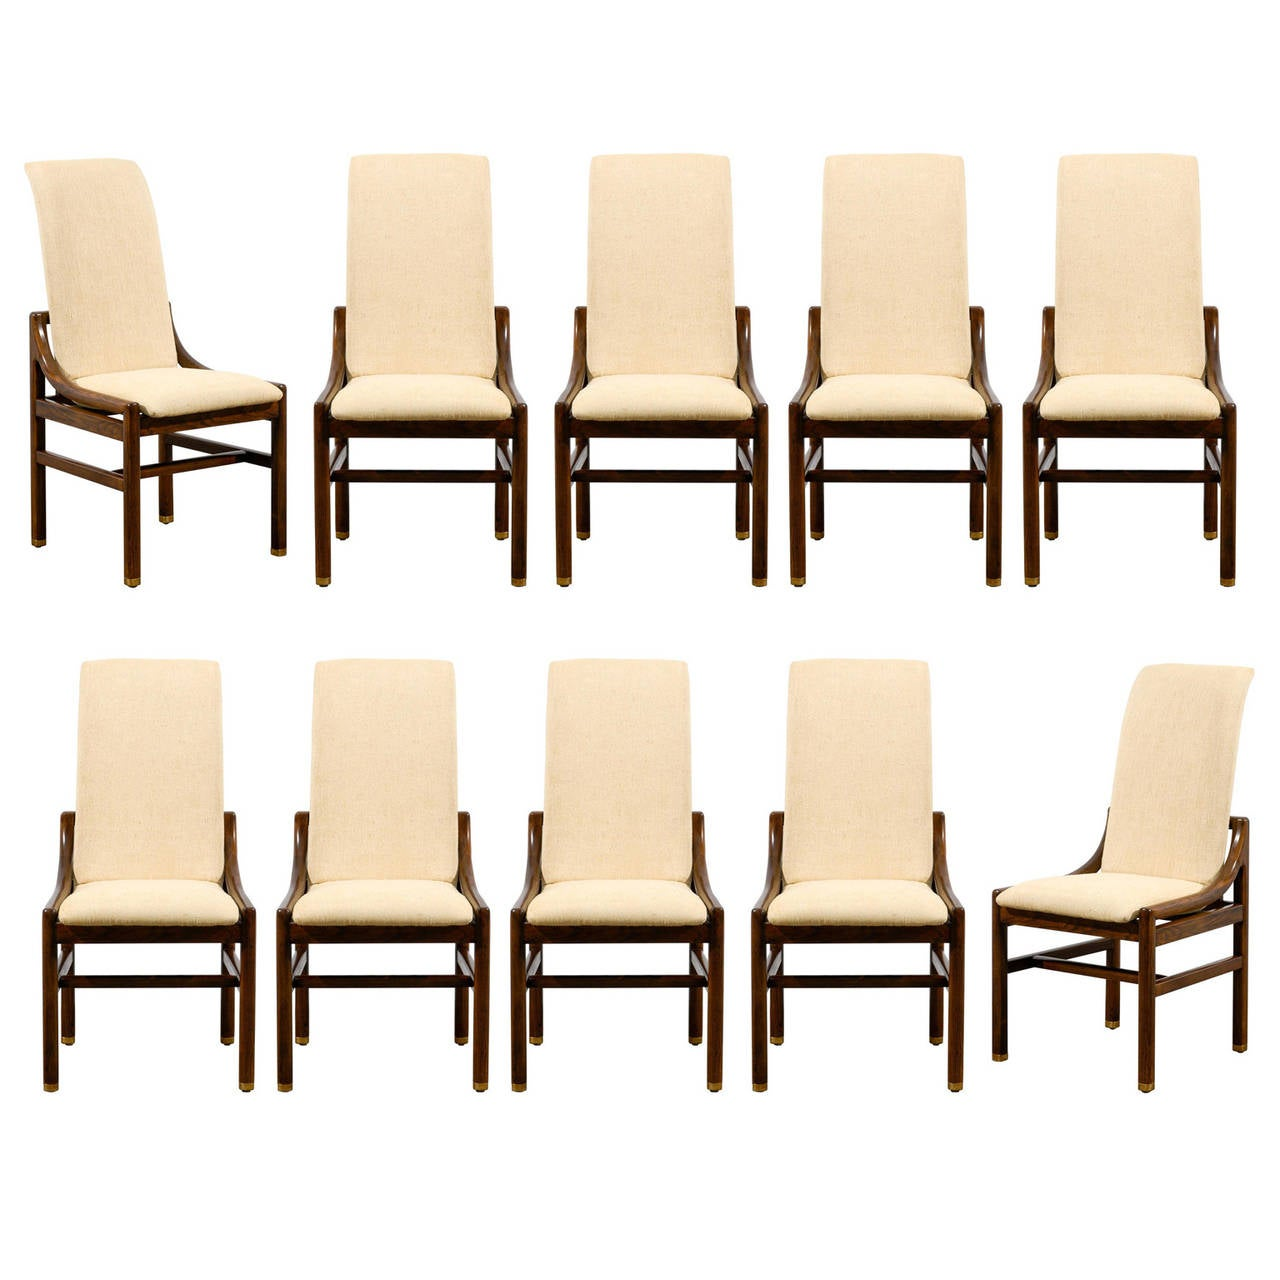 Gorgeous Set of Ten ( 10 ) Vintage Henredon Dining Chairs in ...